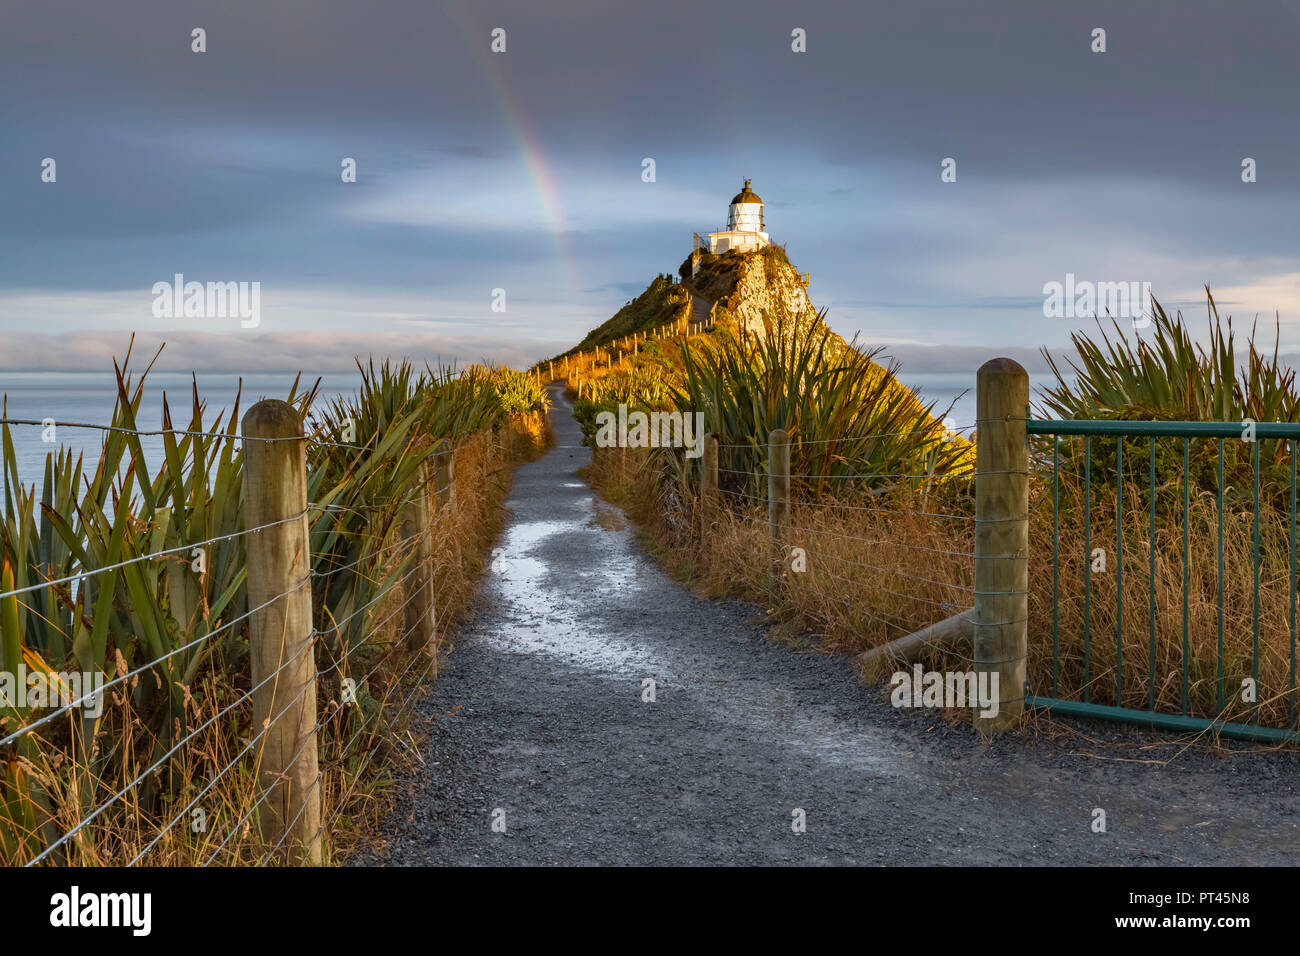 Rainbow at Nugget Point lighthouse after the storm, Ahuriri Flat, Clutha district, Otago region, South Island, New Zealand, - Stock Image